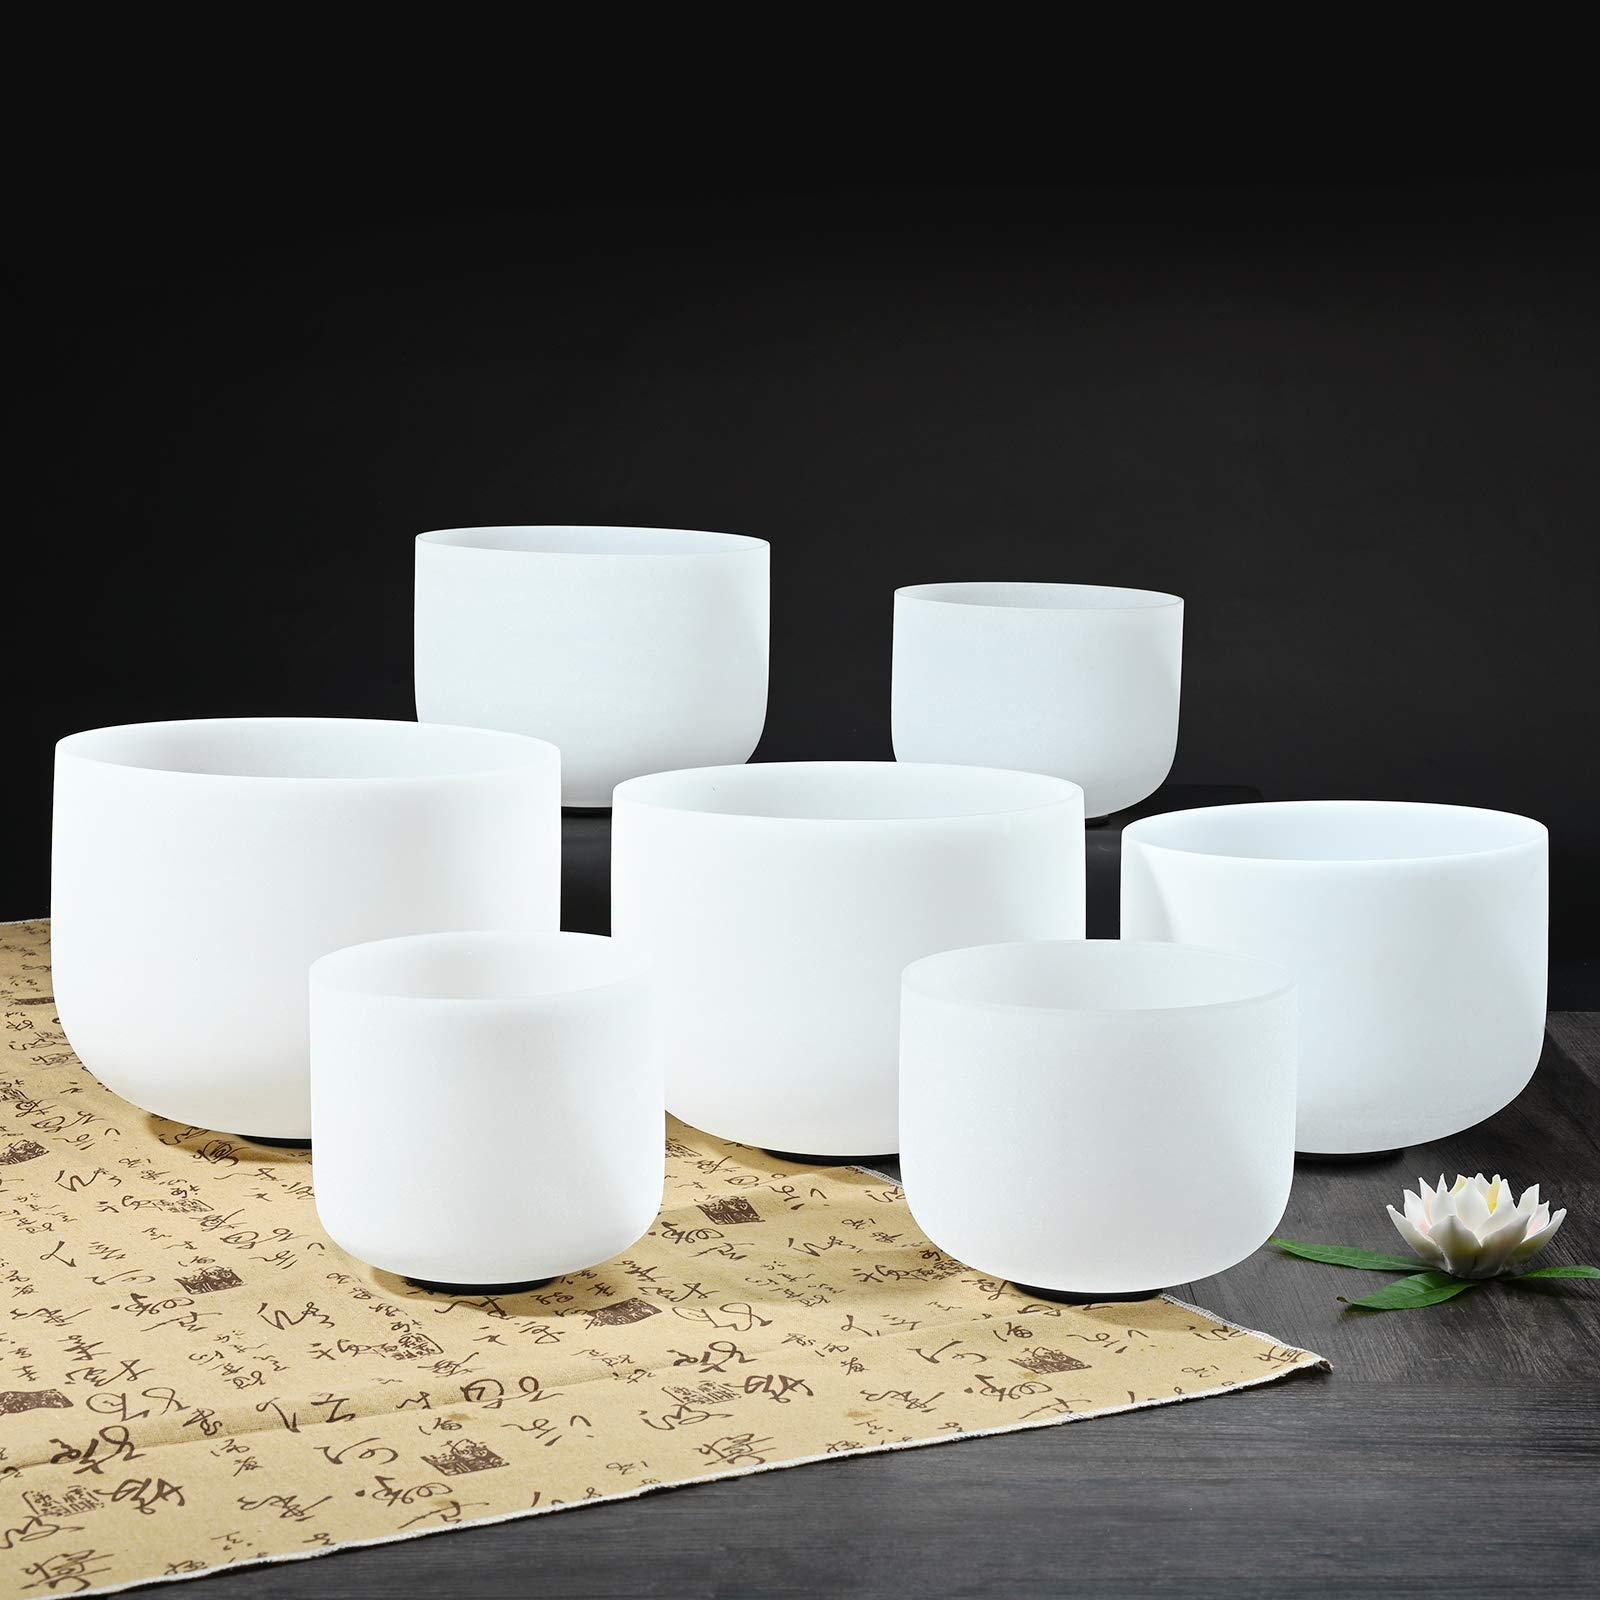 CVNC 432HZ 7-13 Inch Perfect Pitch Set of 7 PCS Frosted Quartz Crystal Singing Bowls Sound Healing Instrument